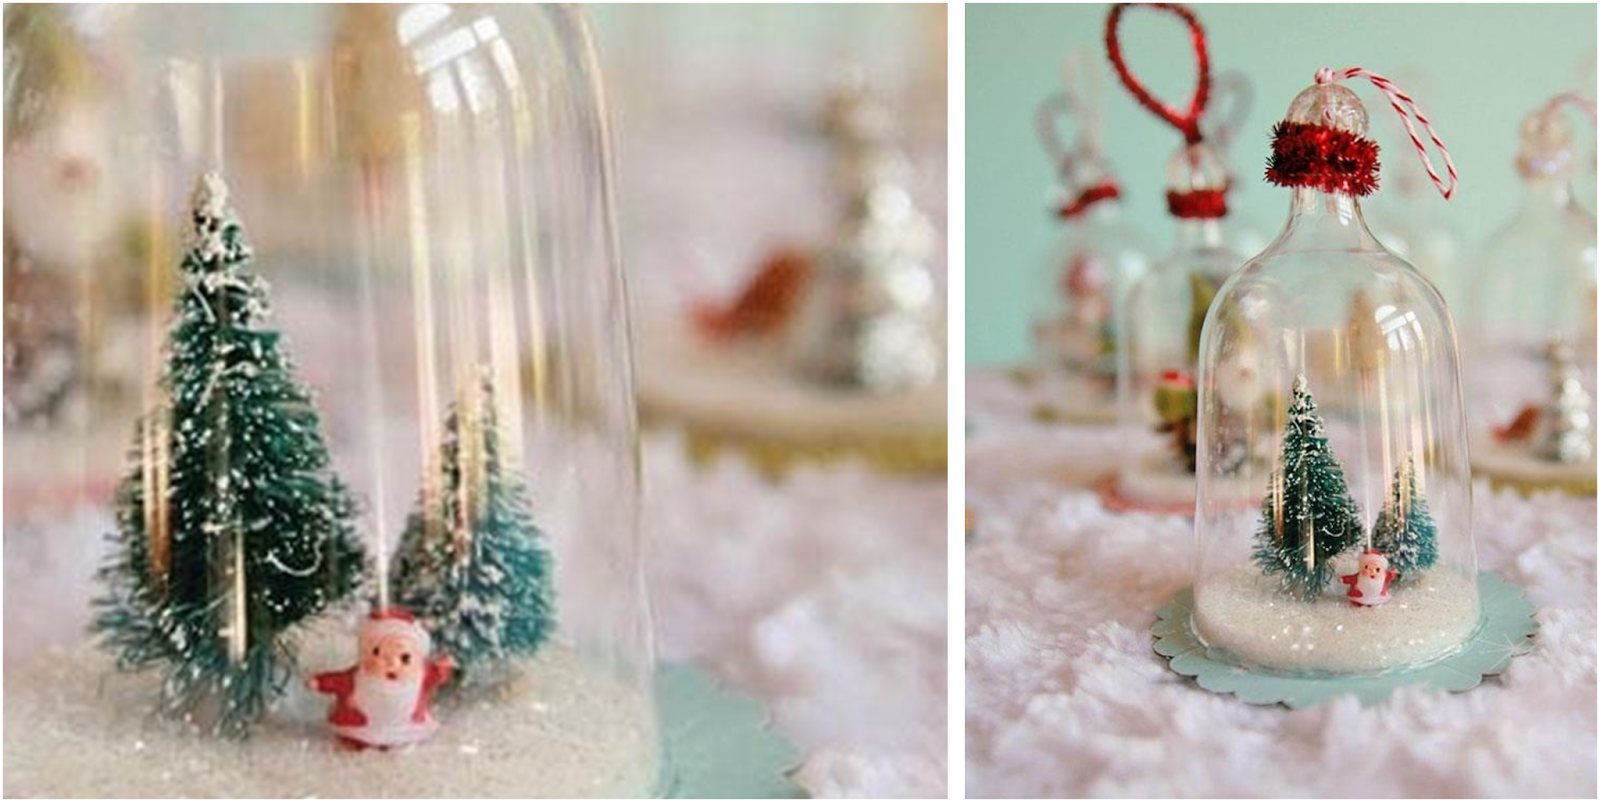 10 DIY Christmas Gift Ideas That Won't Break The Bank - twenty8divine.com